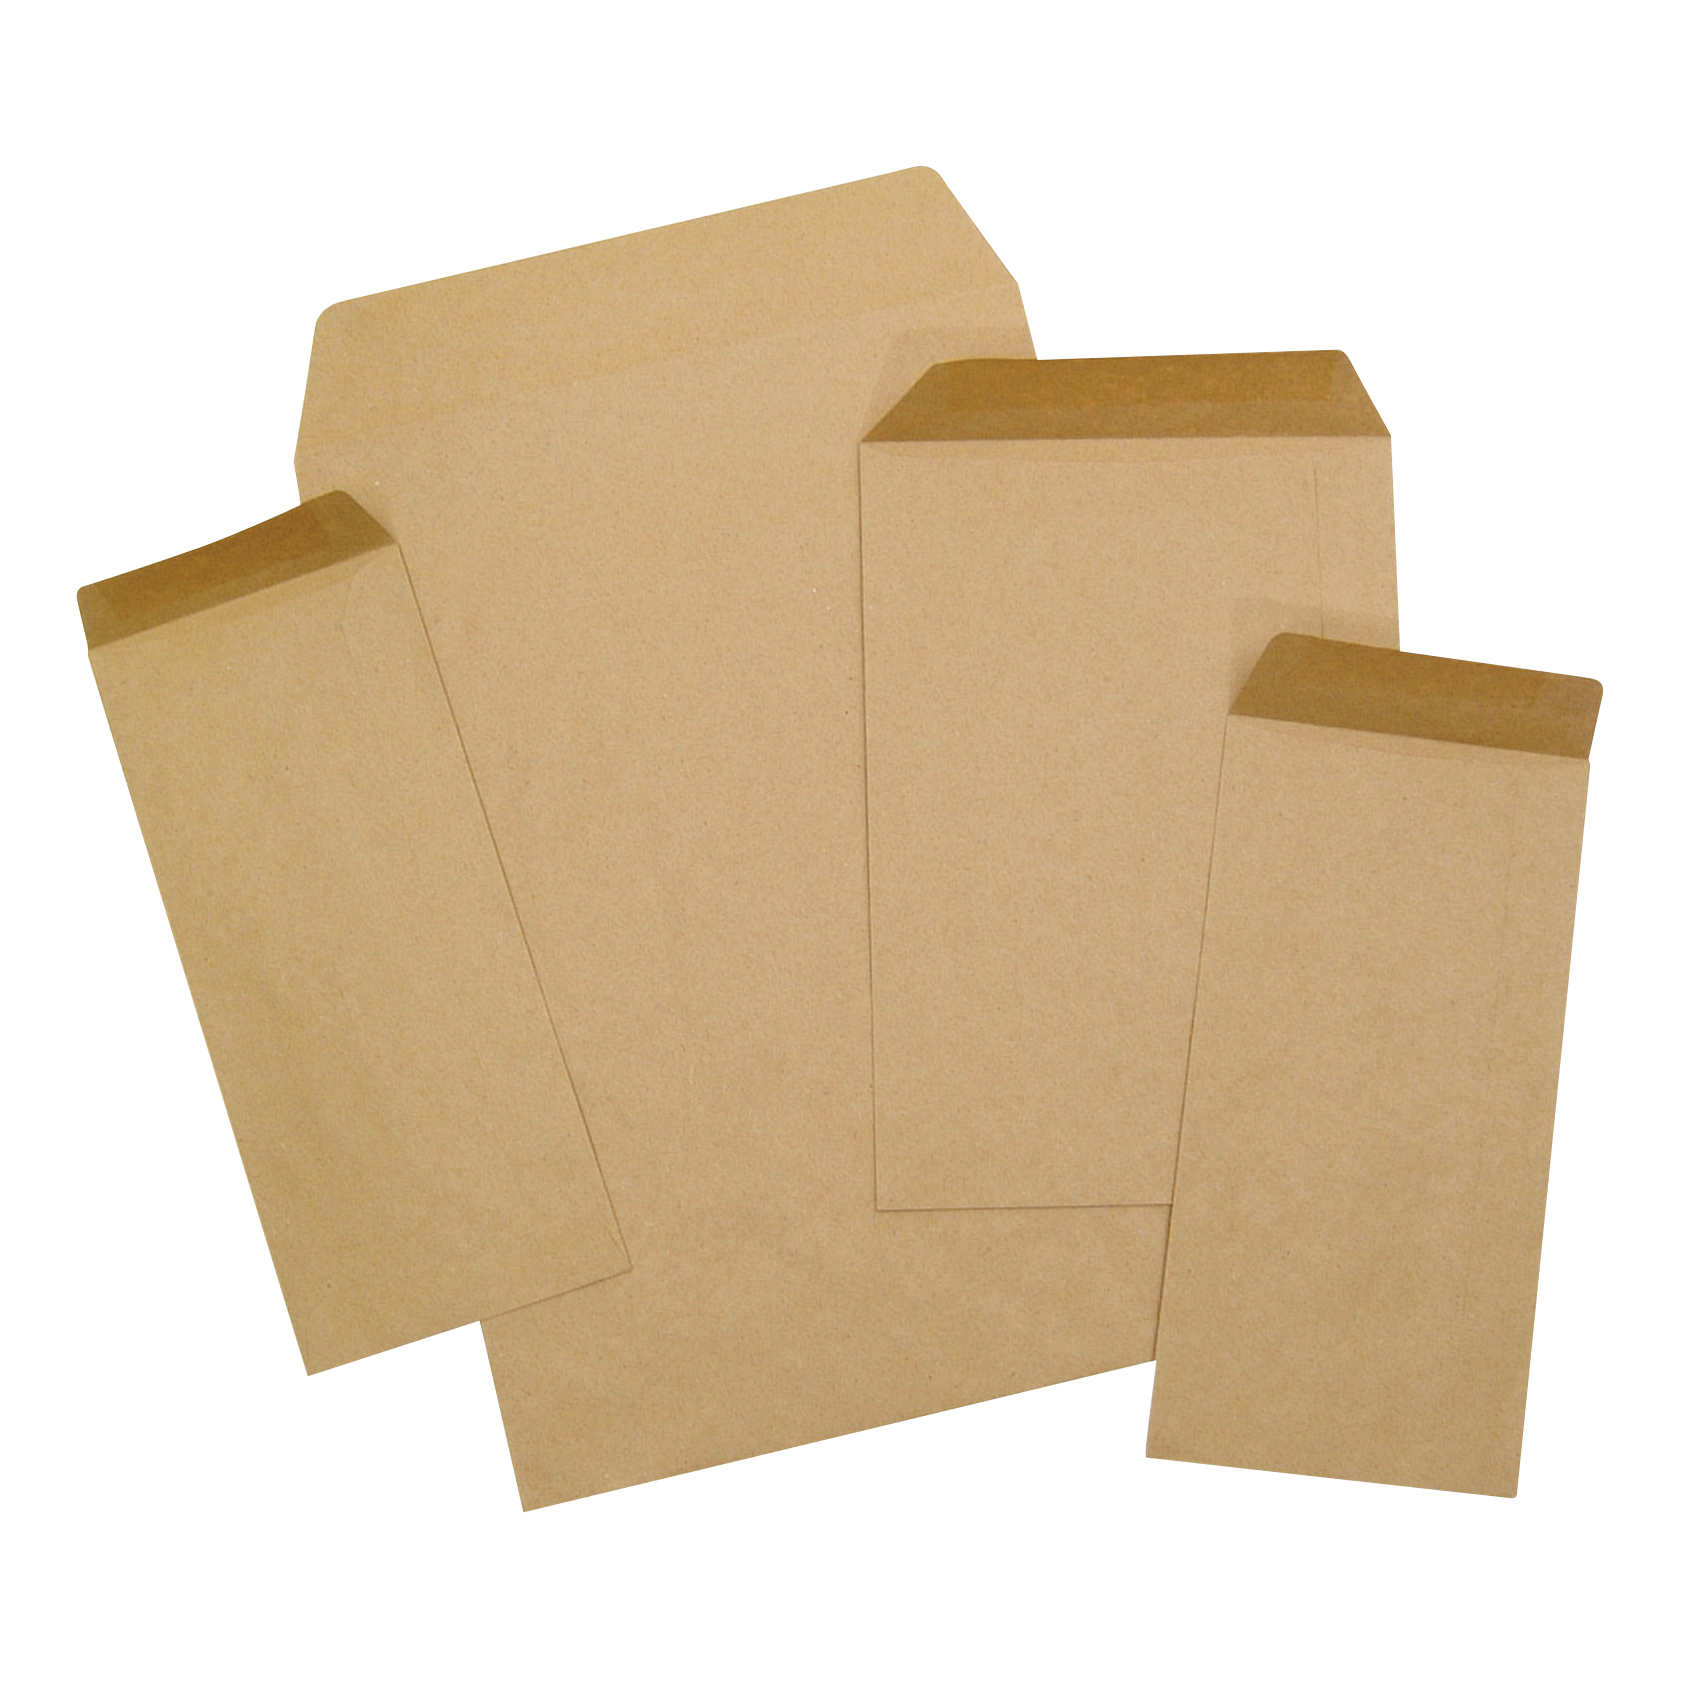 5 Star Office Envelopes FSC Pocket Recycled Gummed 80gsm DL 220x110mm Manilla [Pack 1000]